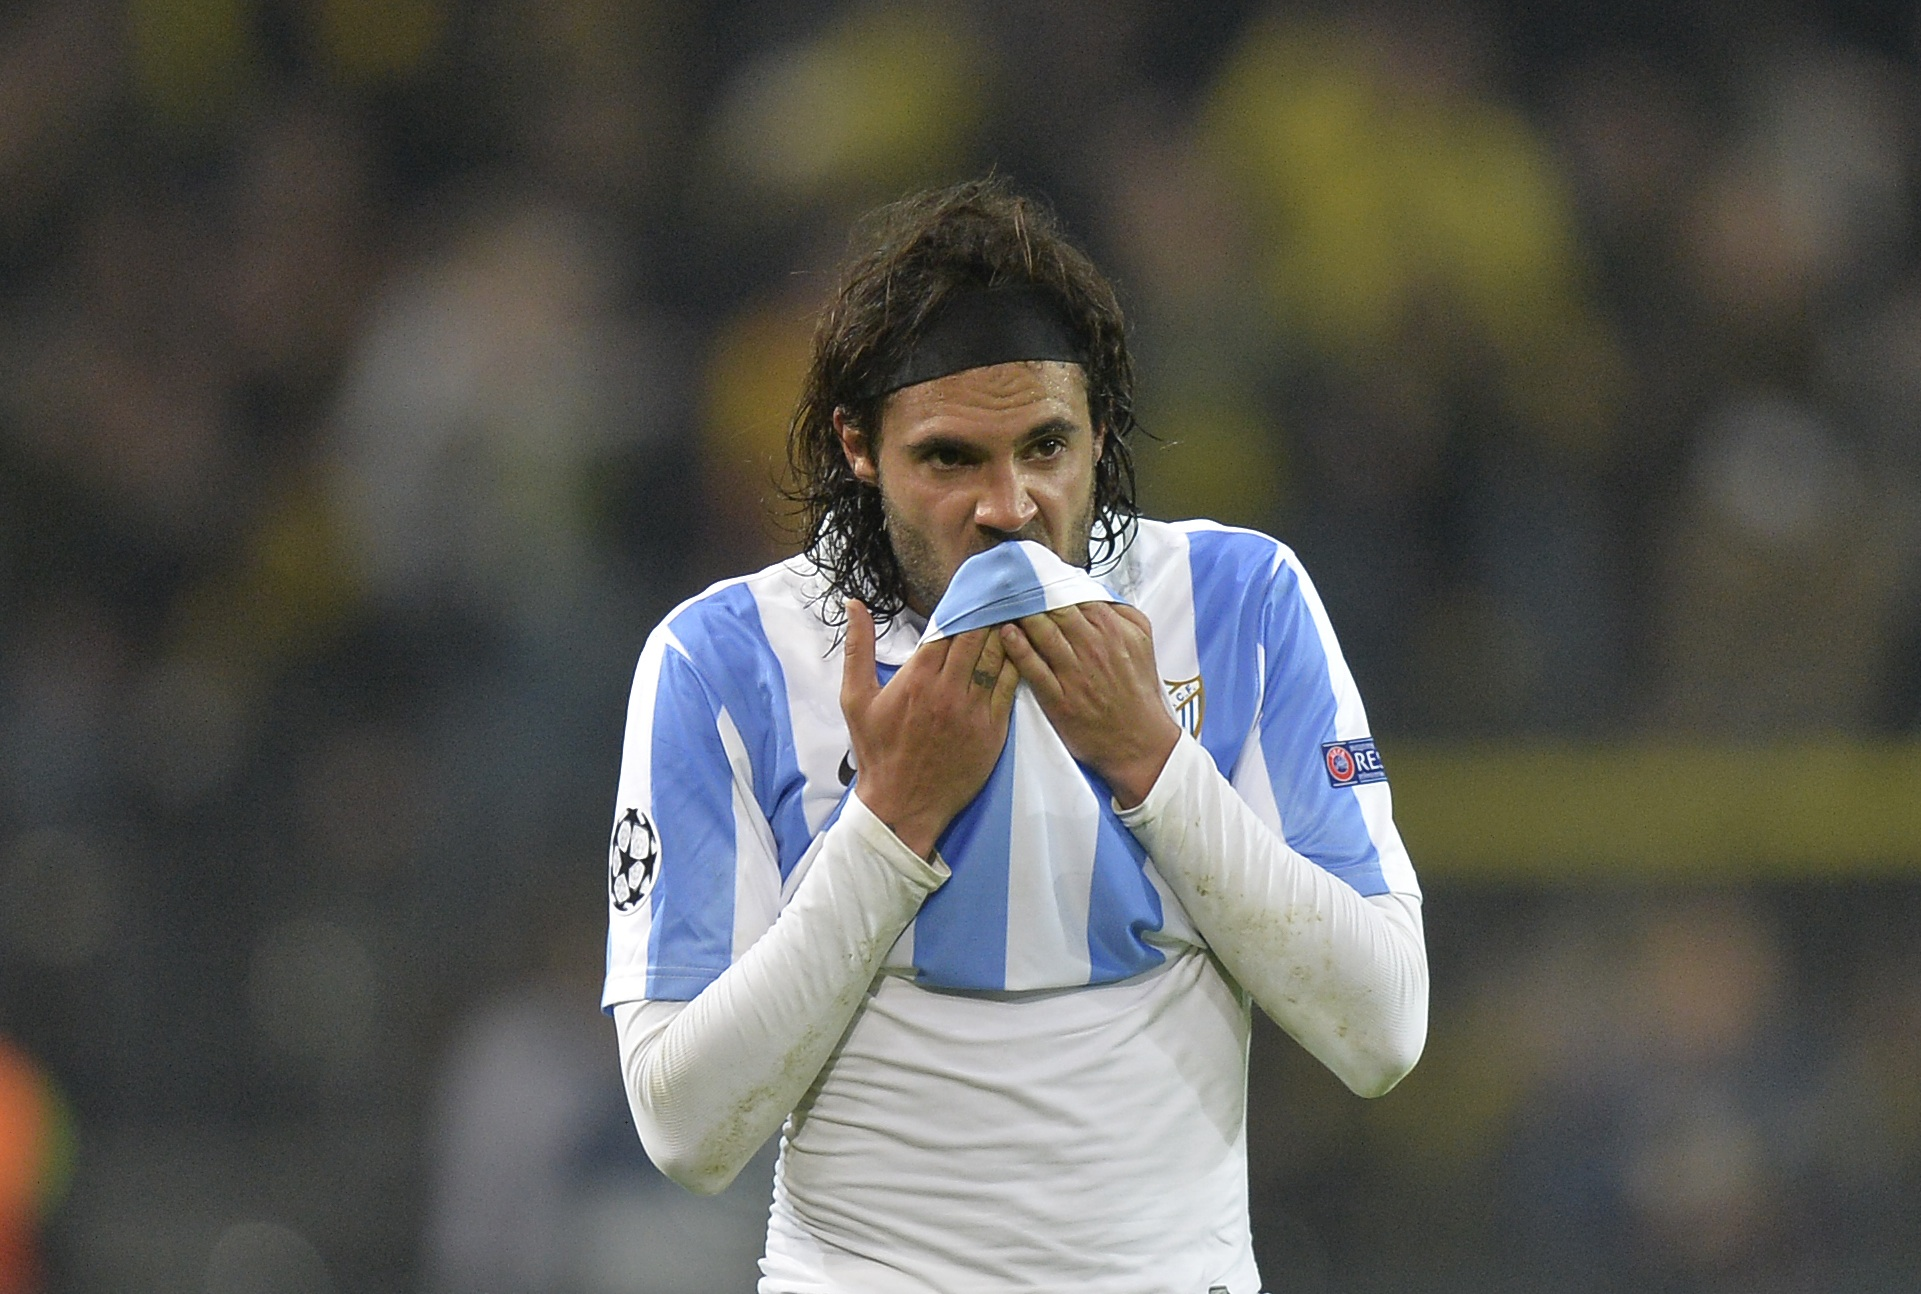 Malaga's Sergio Sanchez reacts during a Champions League match on April 9, 2013